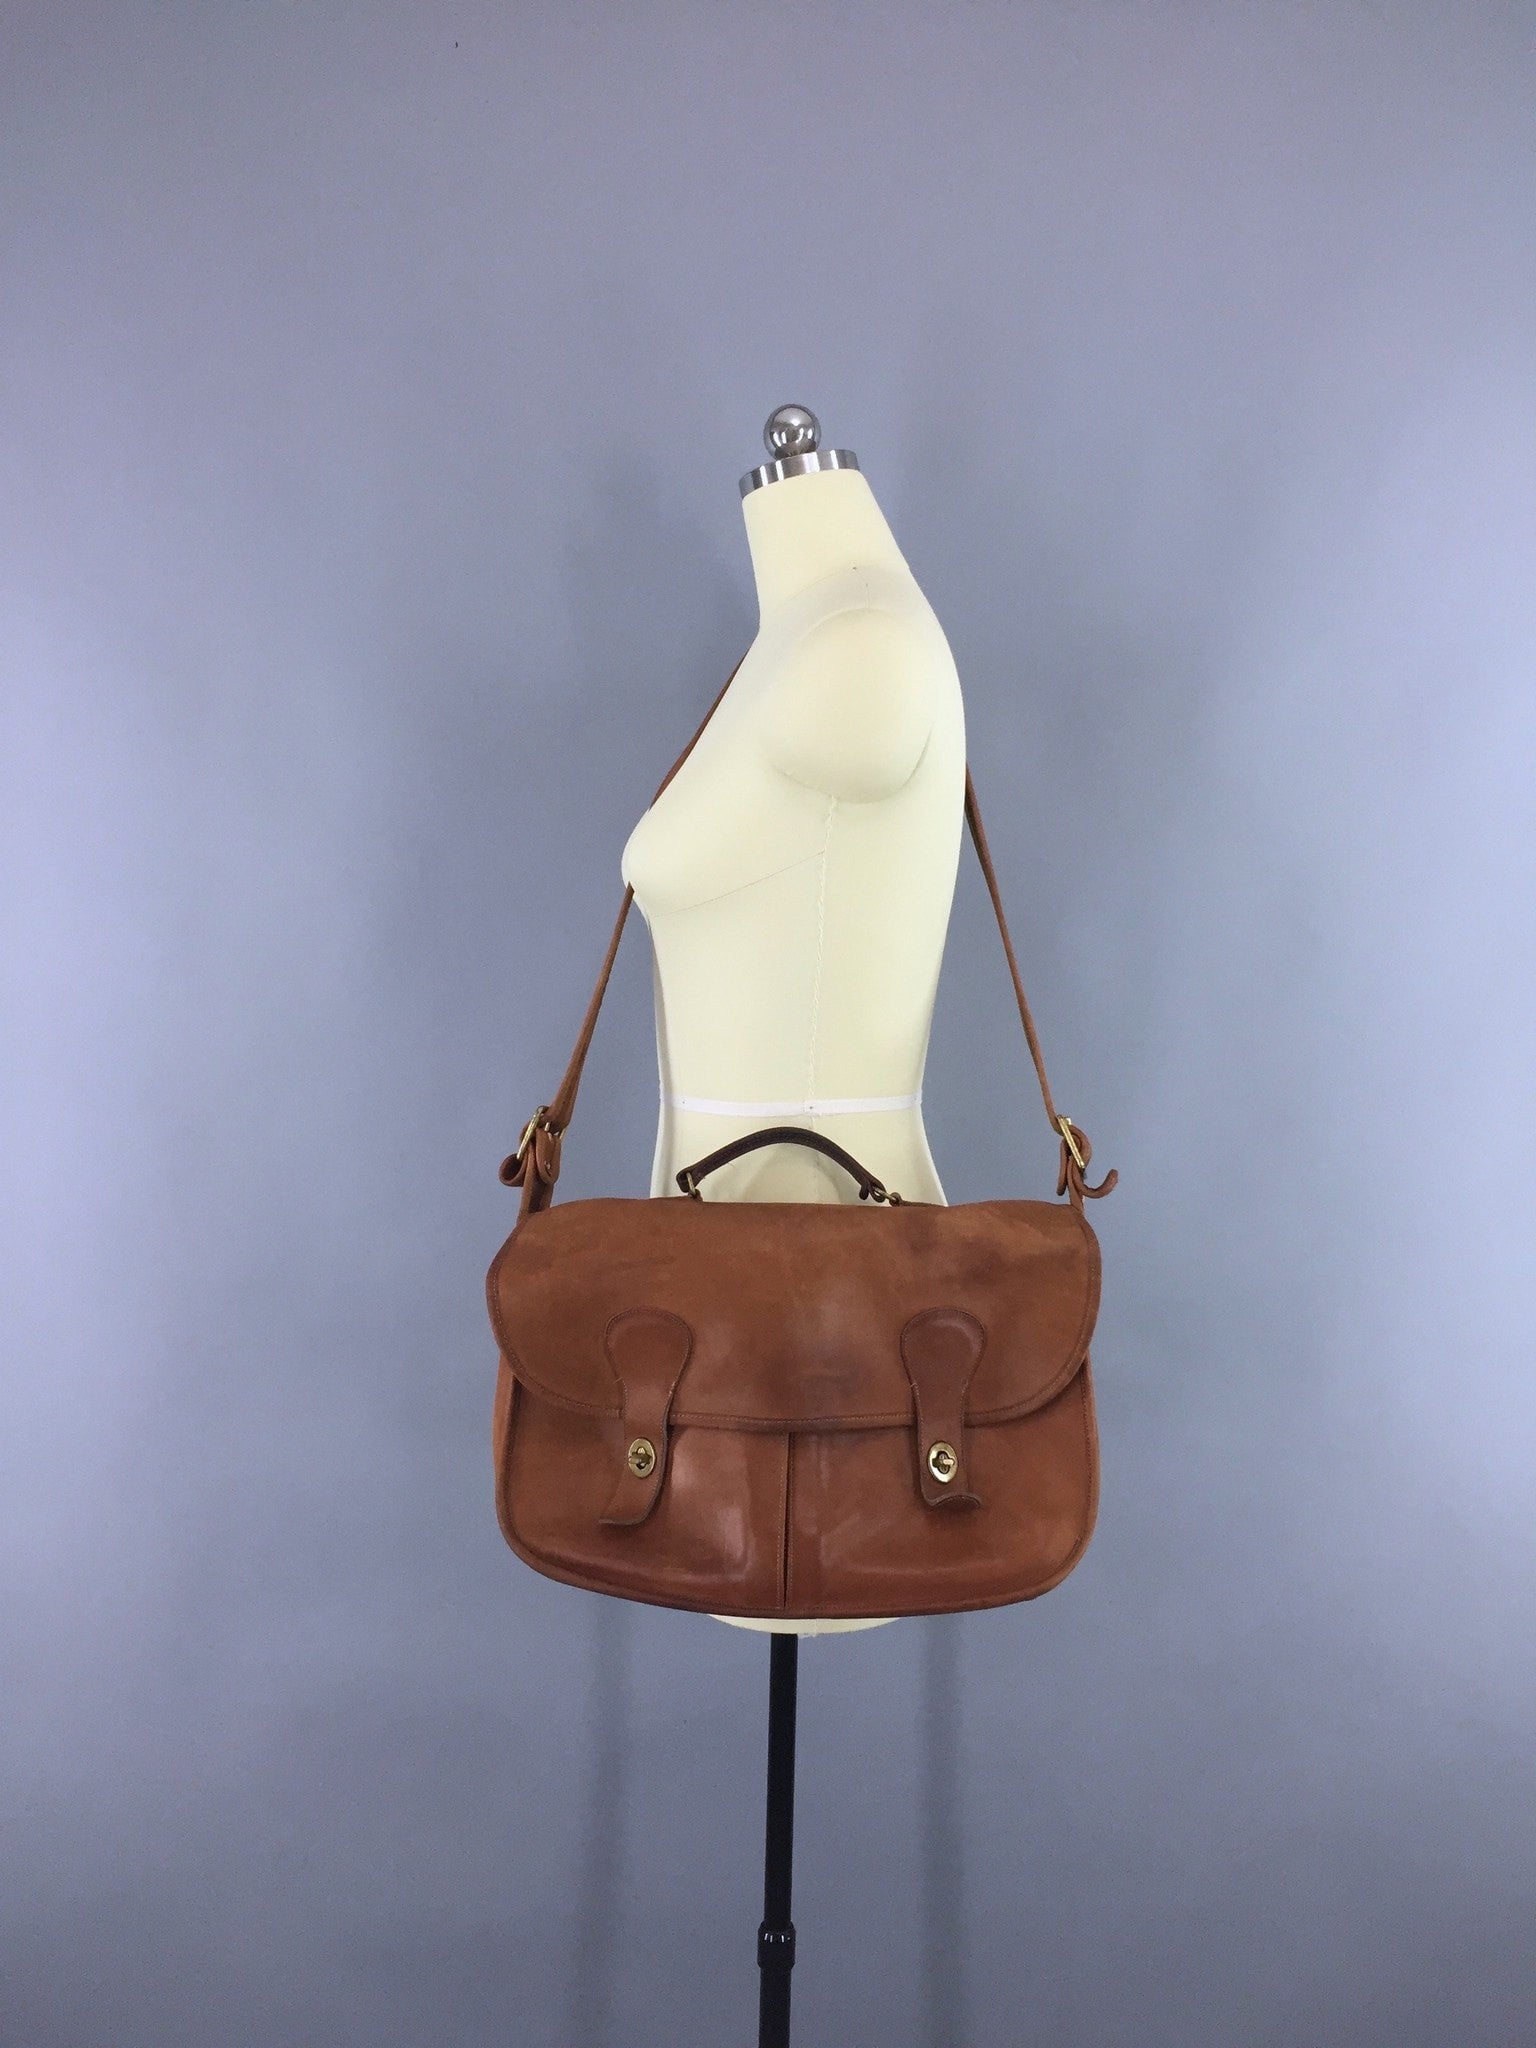 Vintage 1970s Coach Tan Leather Musette Messenger Bag Accessories ThisBlueBird